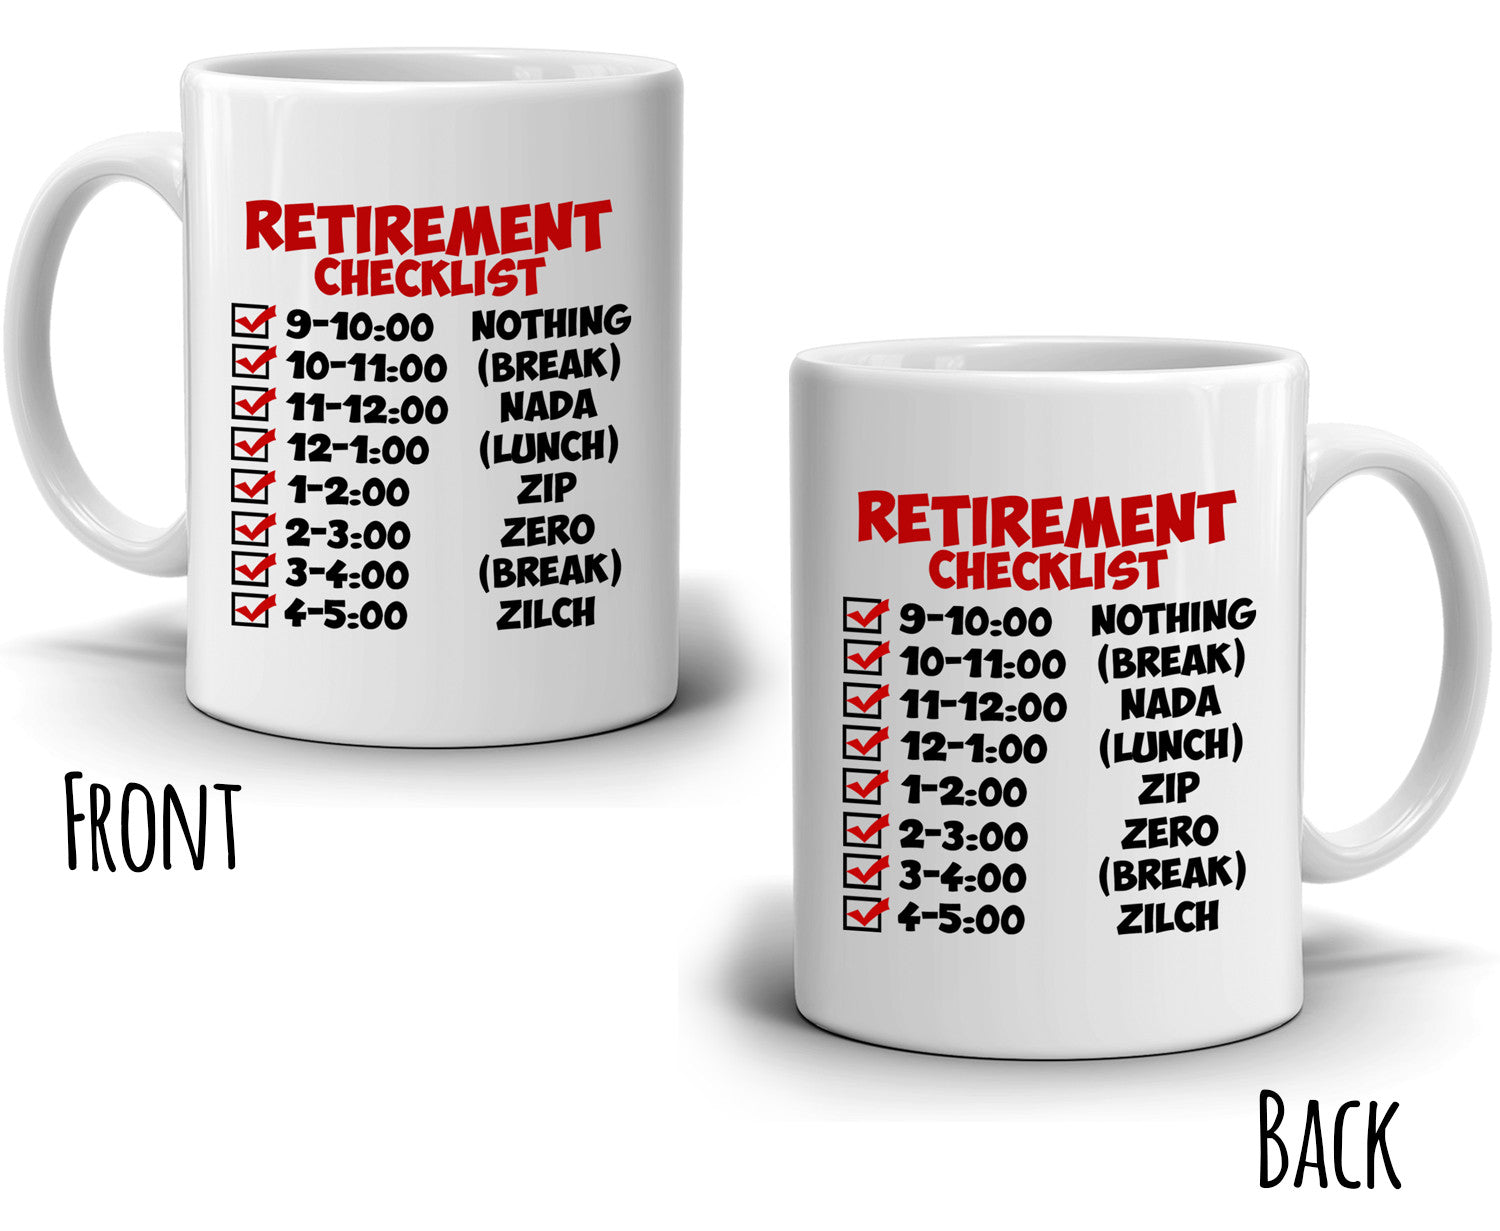 Funny retirement gift checklist coffee mug perfect humor present funny retirement gift checklist coffee mug perfect humor present ideas for coworker party invitations printed on both sides thecheapjerseys Image collections